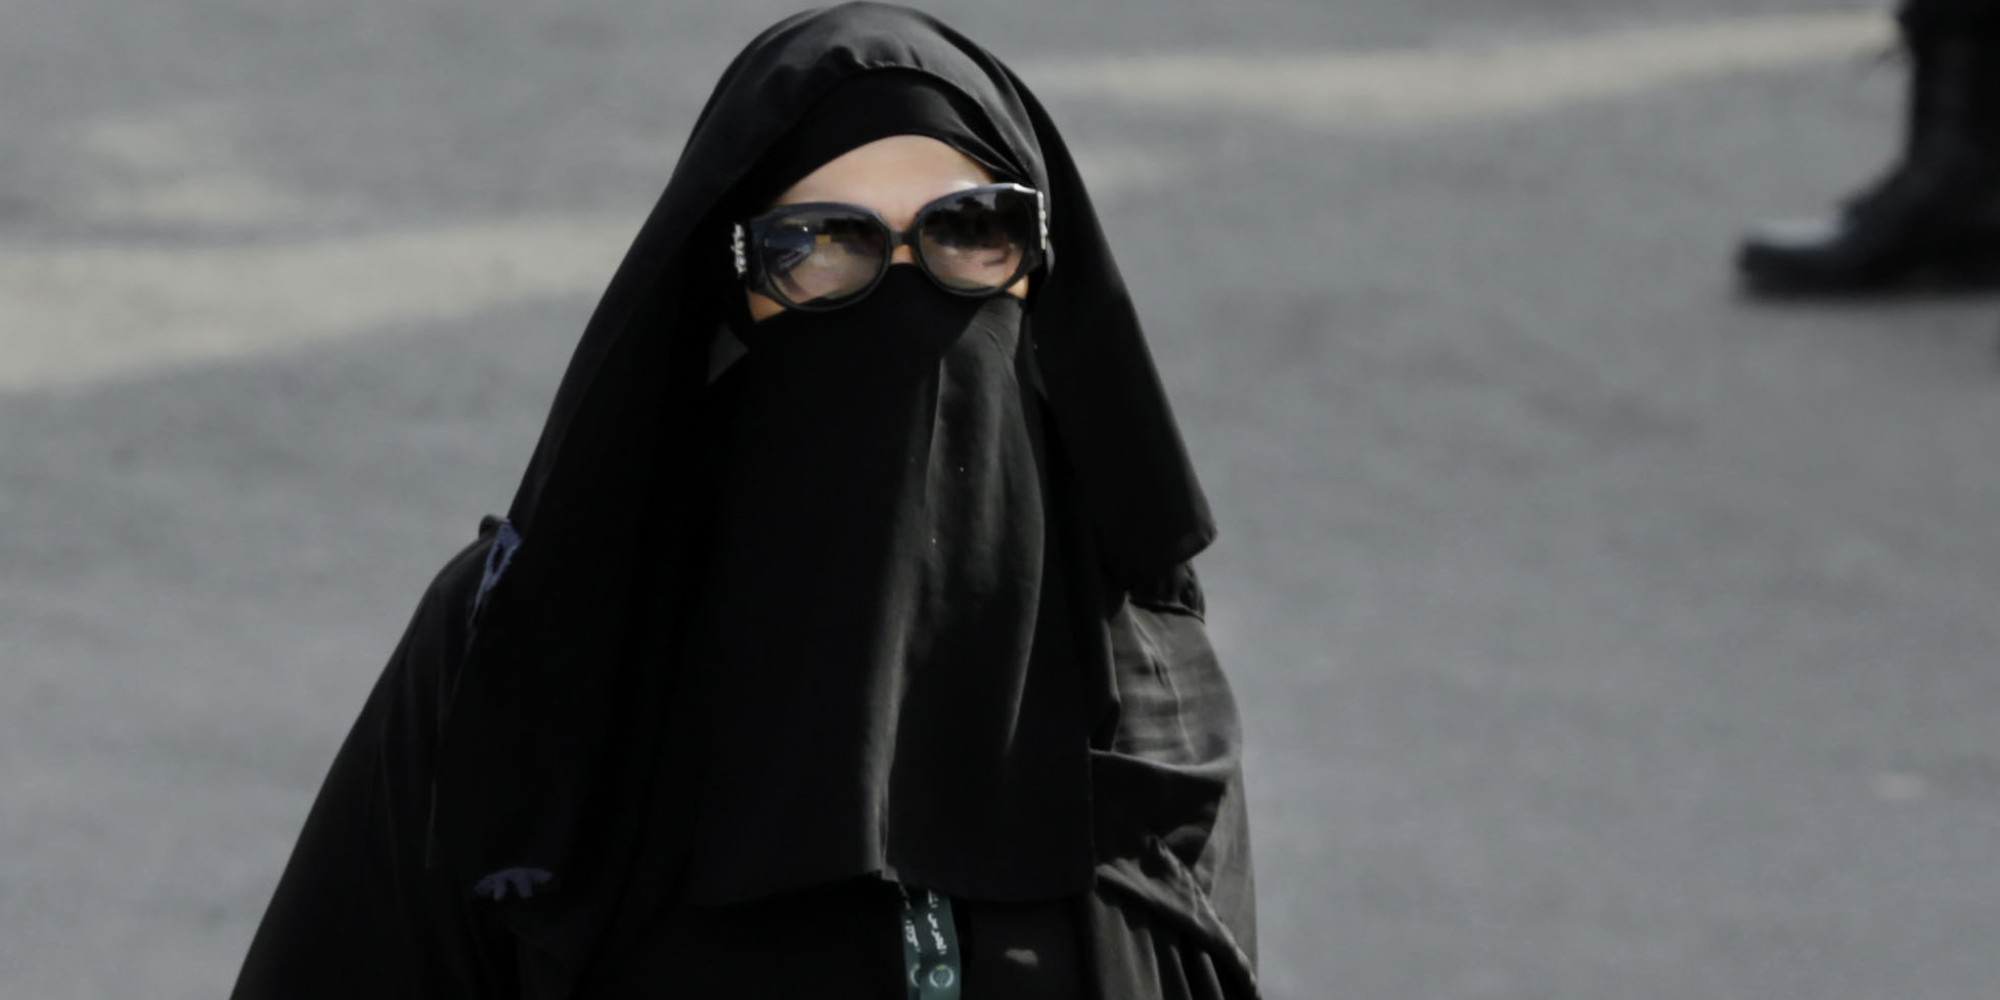 essay about women in saudi arabia Topic: health care in saudi arabia introduction according to the 1970 statistics, there were only 74 hospitals present in kingdom of saudi arabia and about 9,039 beds in total.